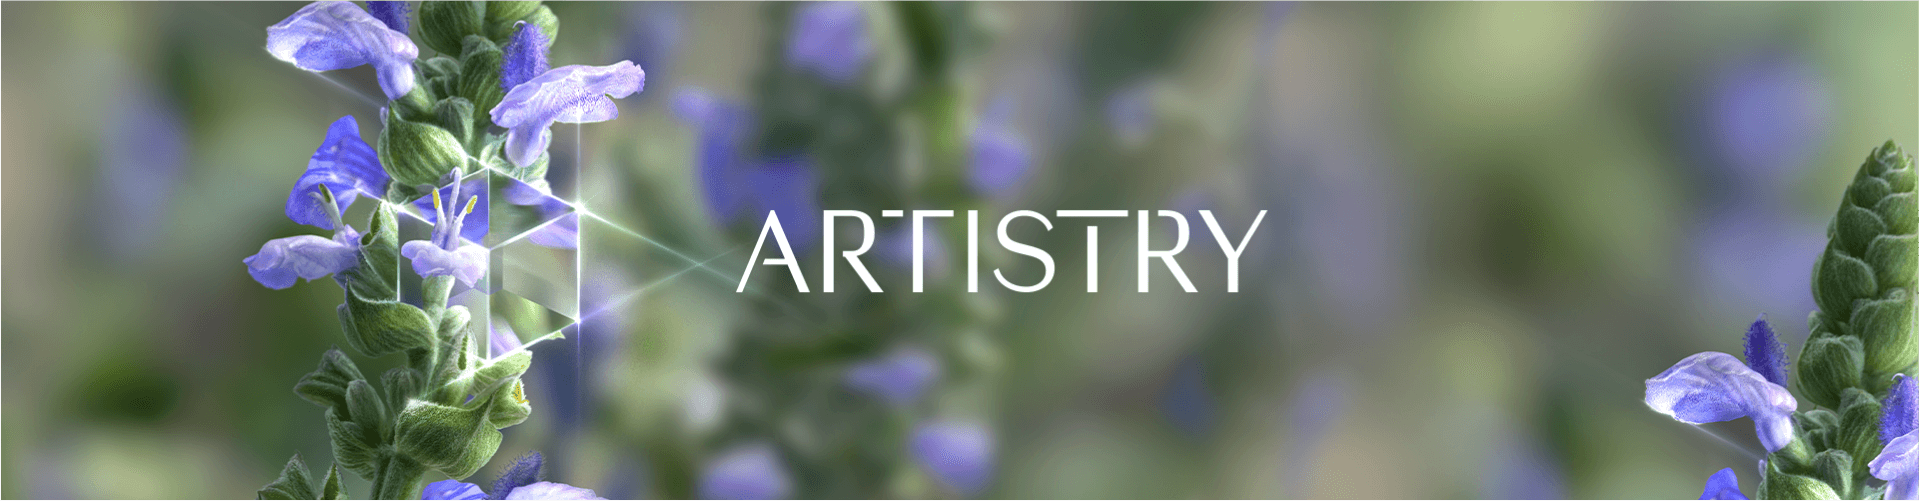 ARTISTRY by Amway